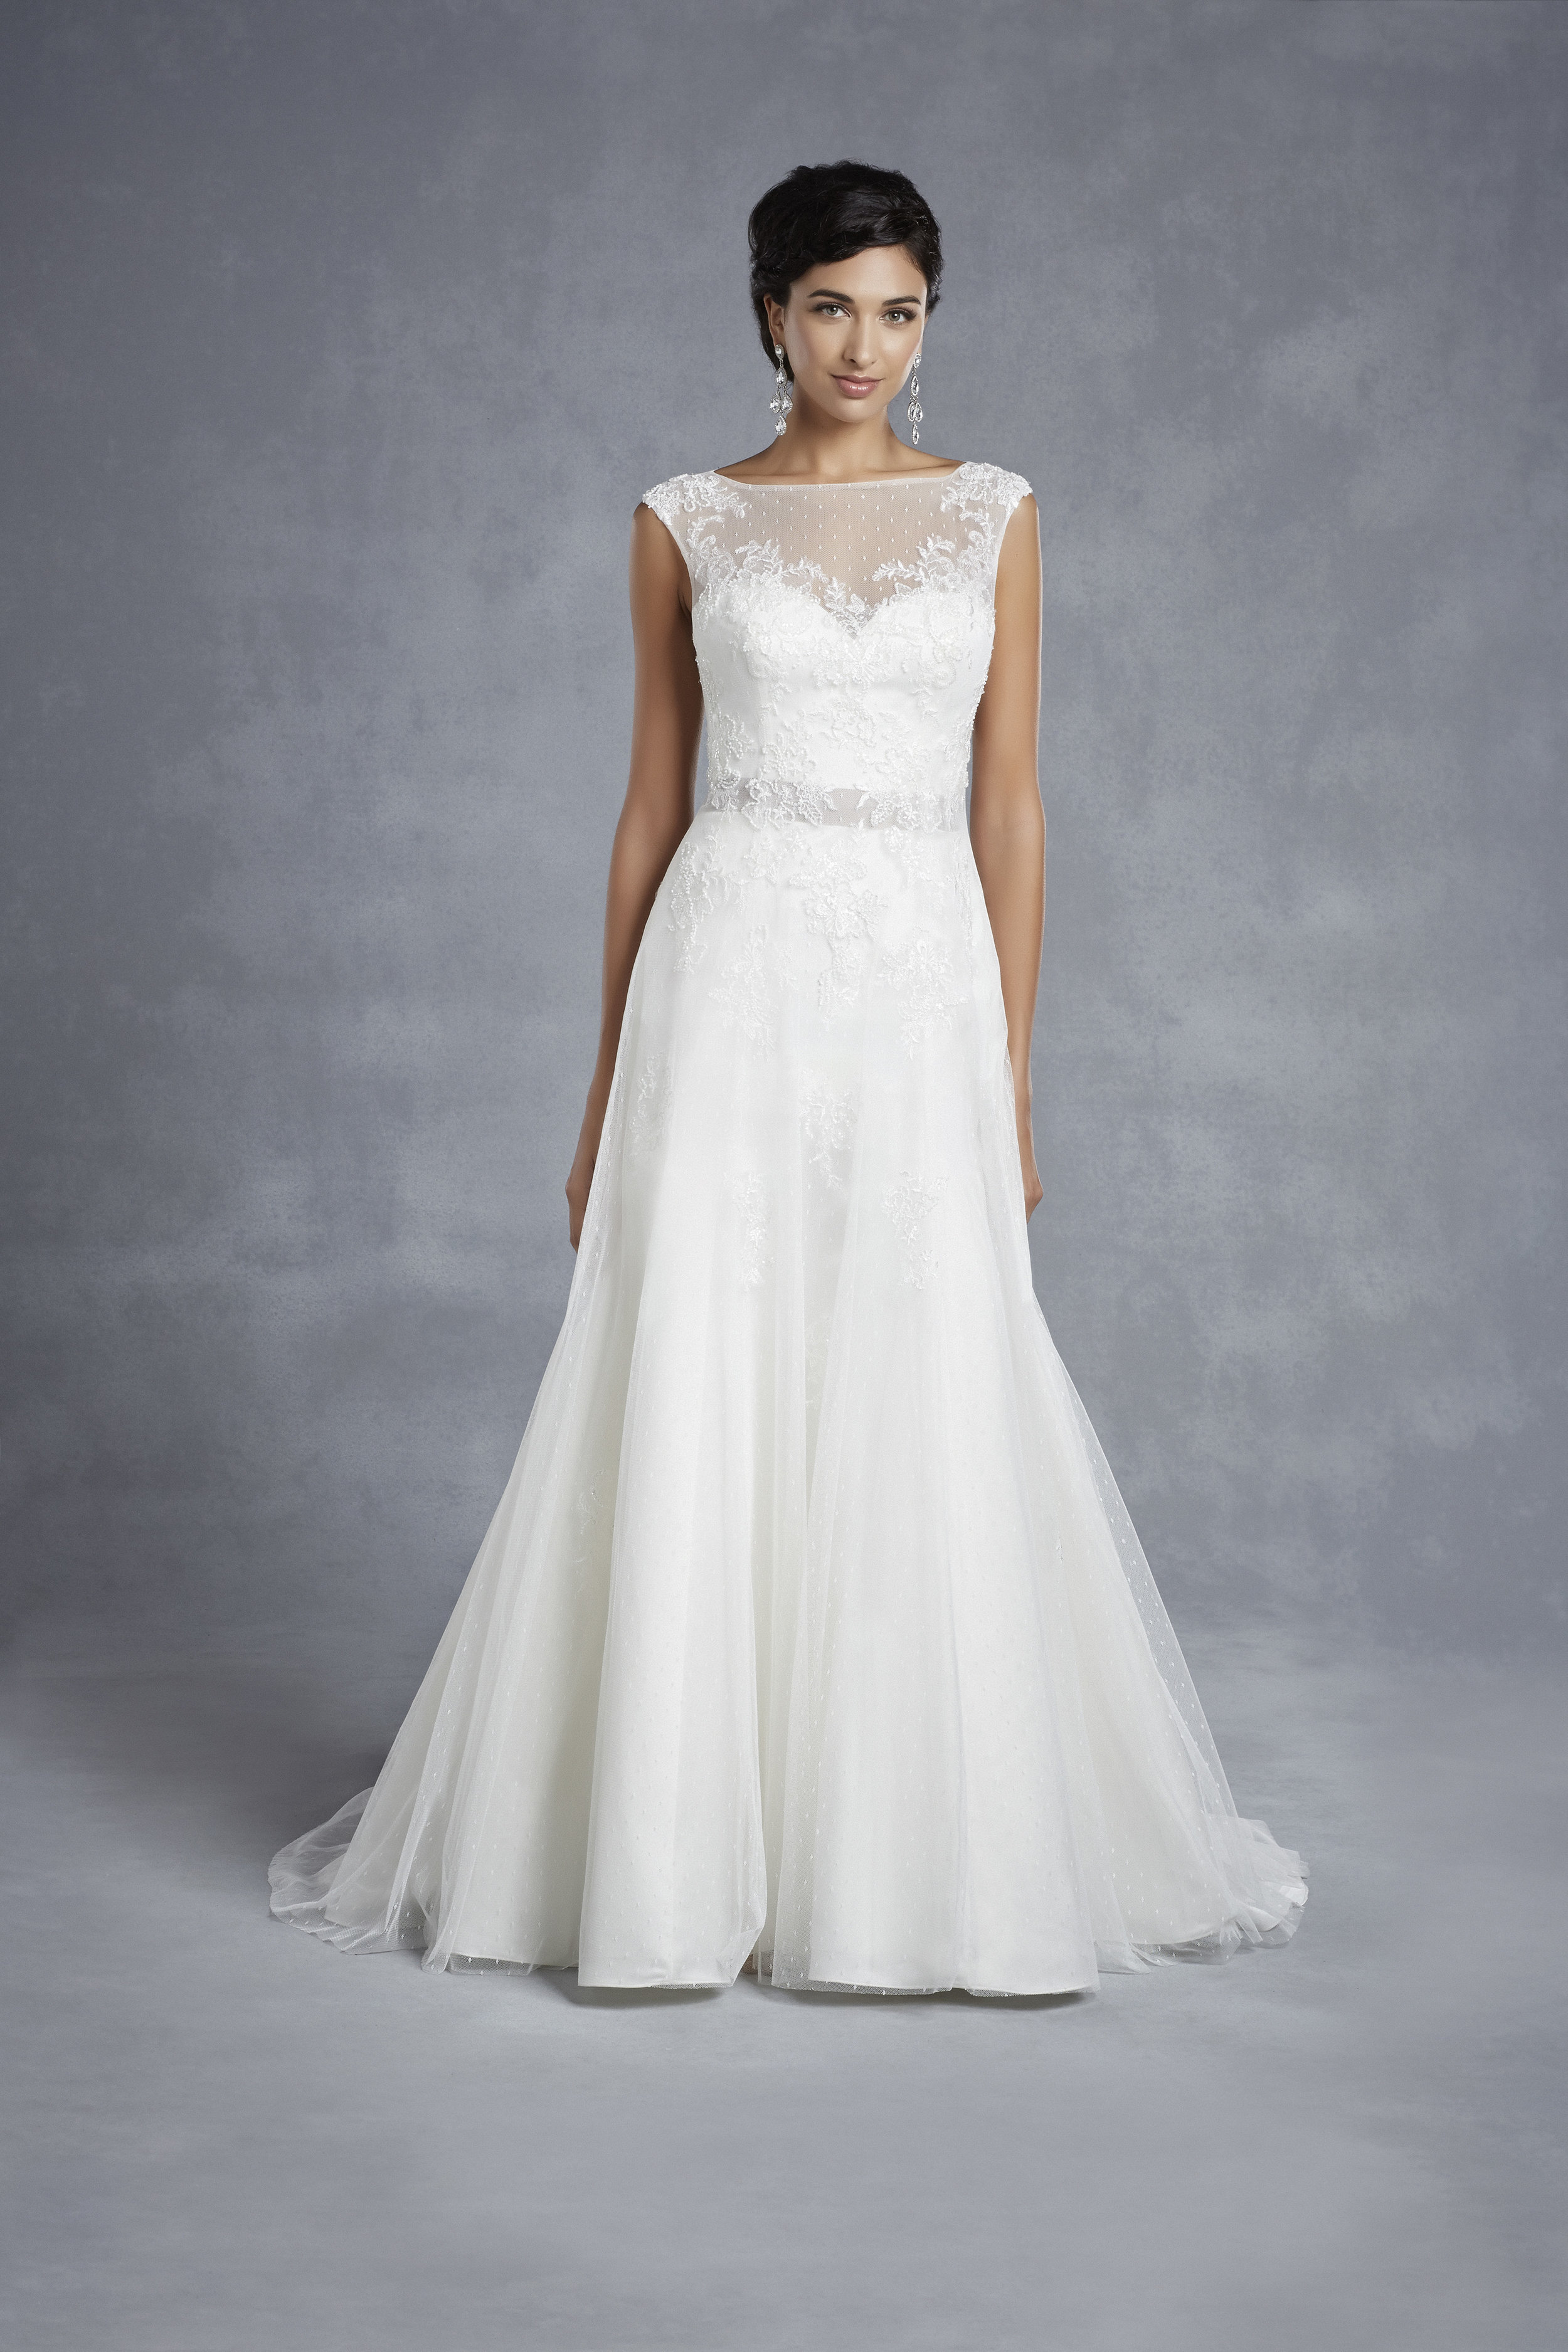 Ray by Enzoani. was £990, reduced to £500. August sale price £350